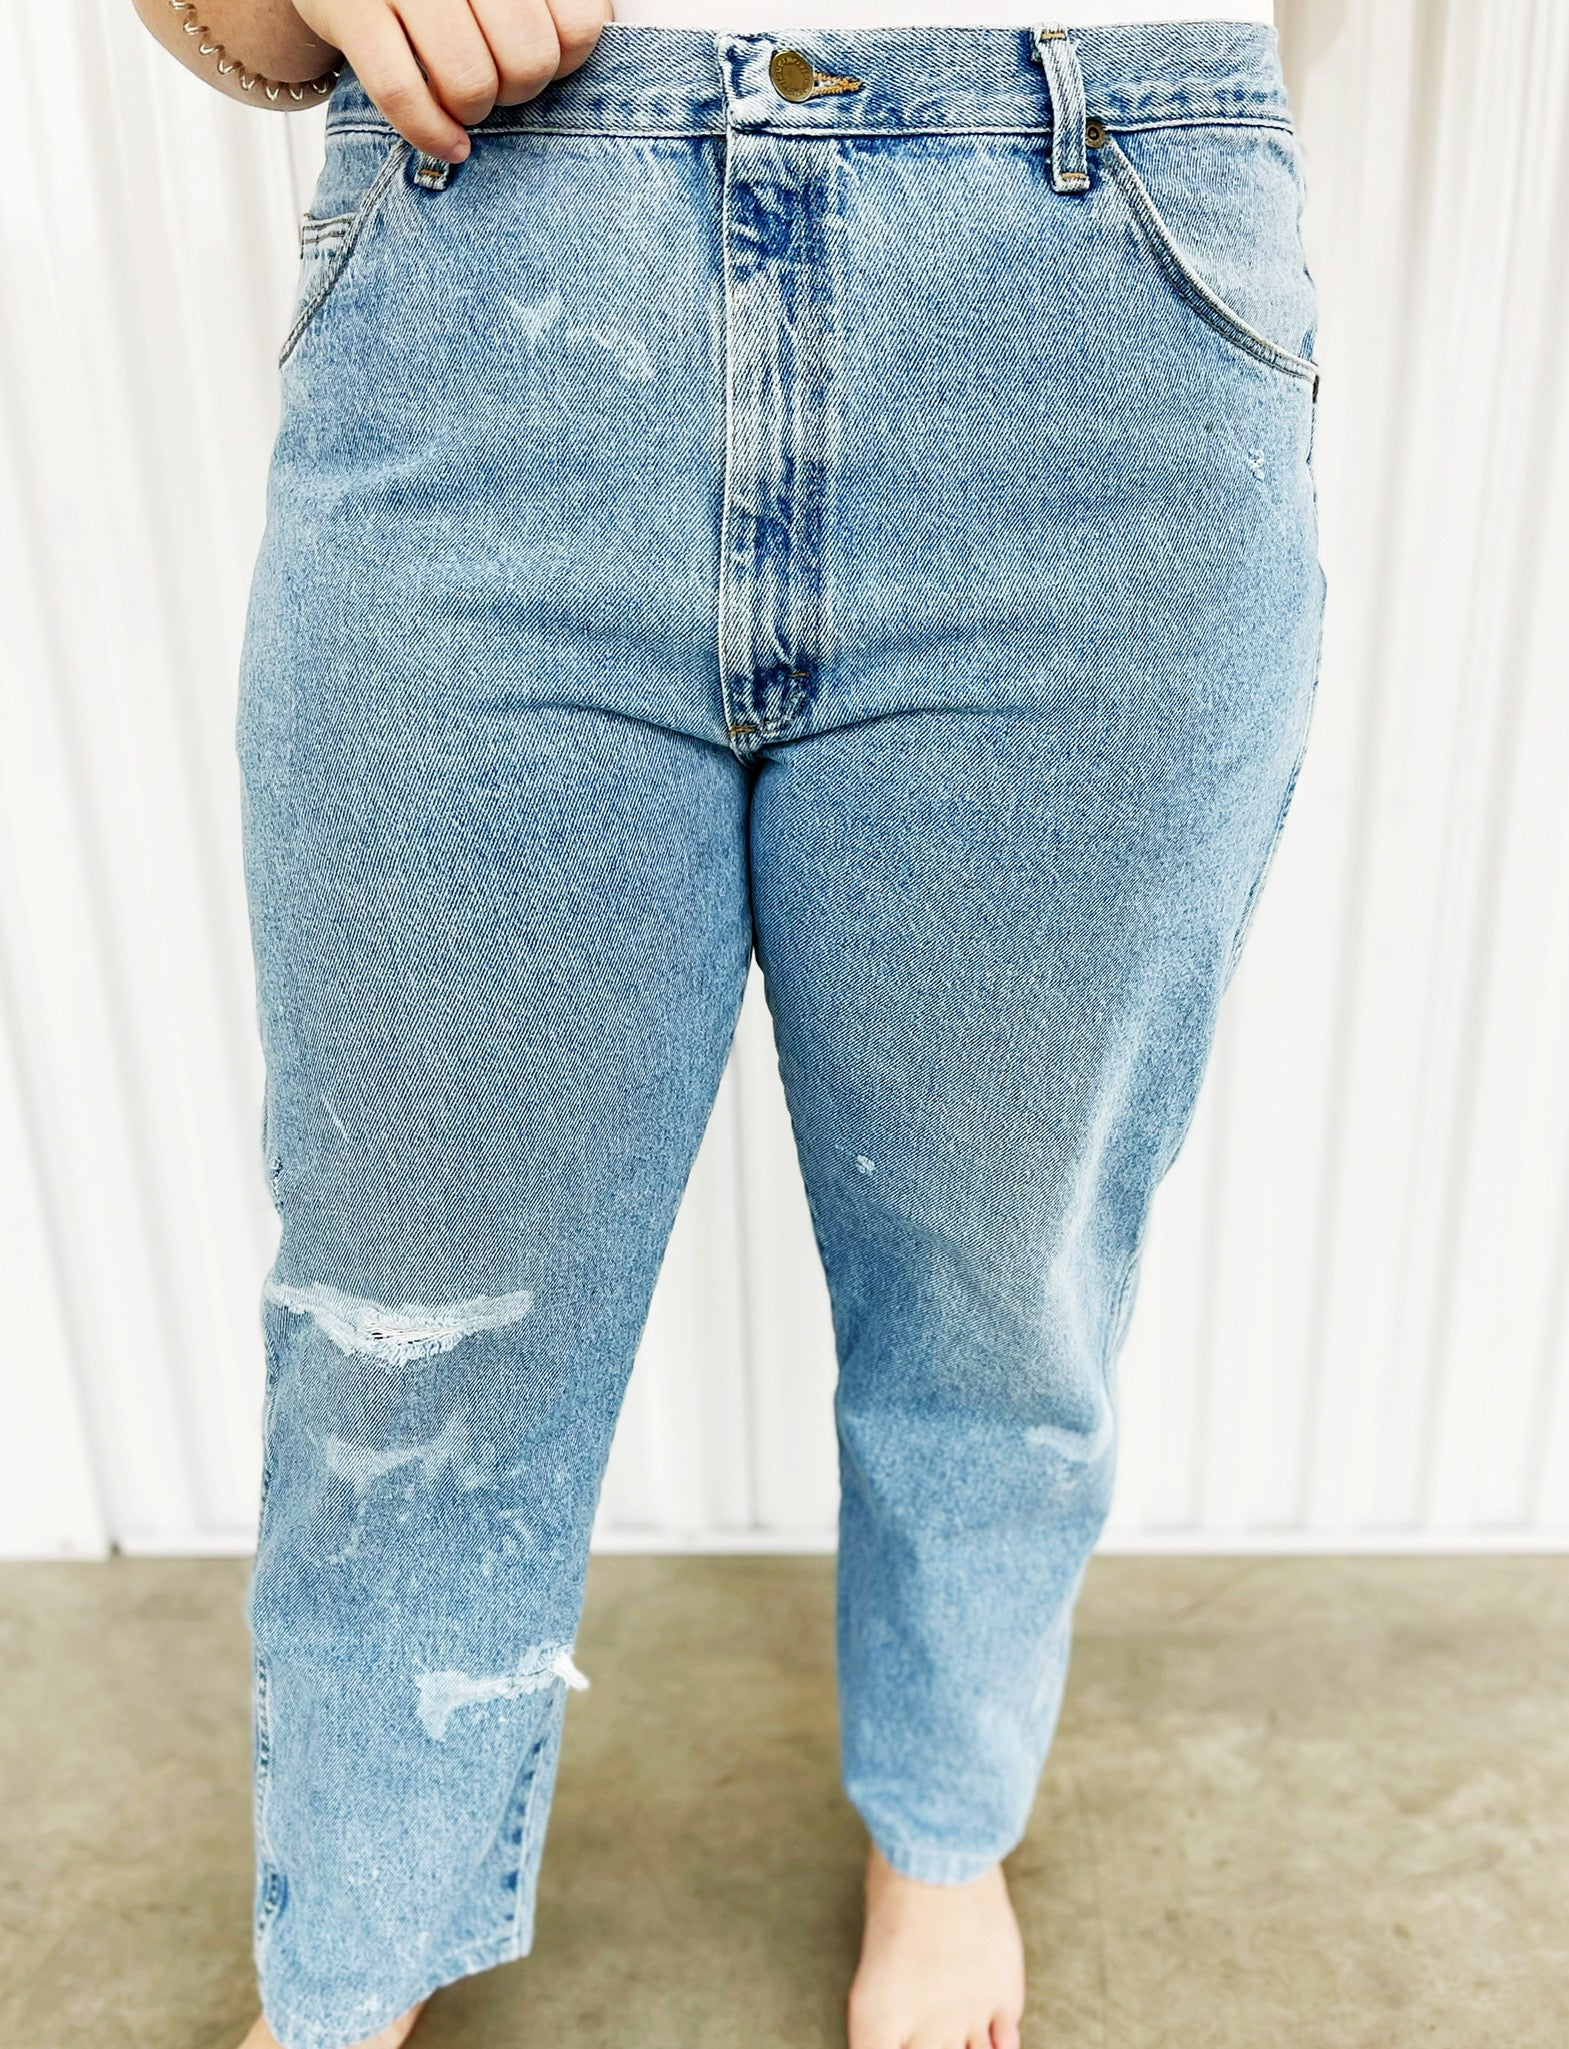 Wrangler Medium Wash Bleached Jeans (43)